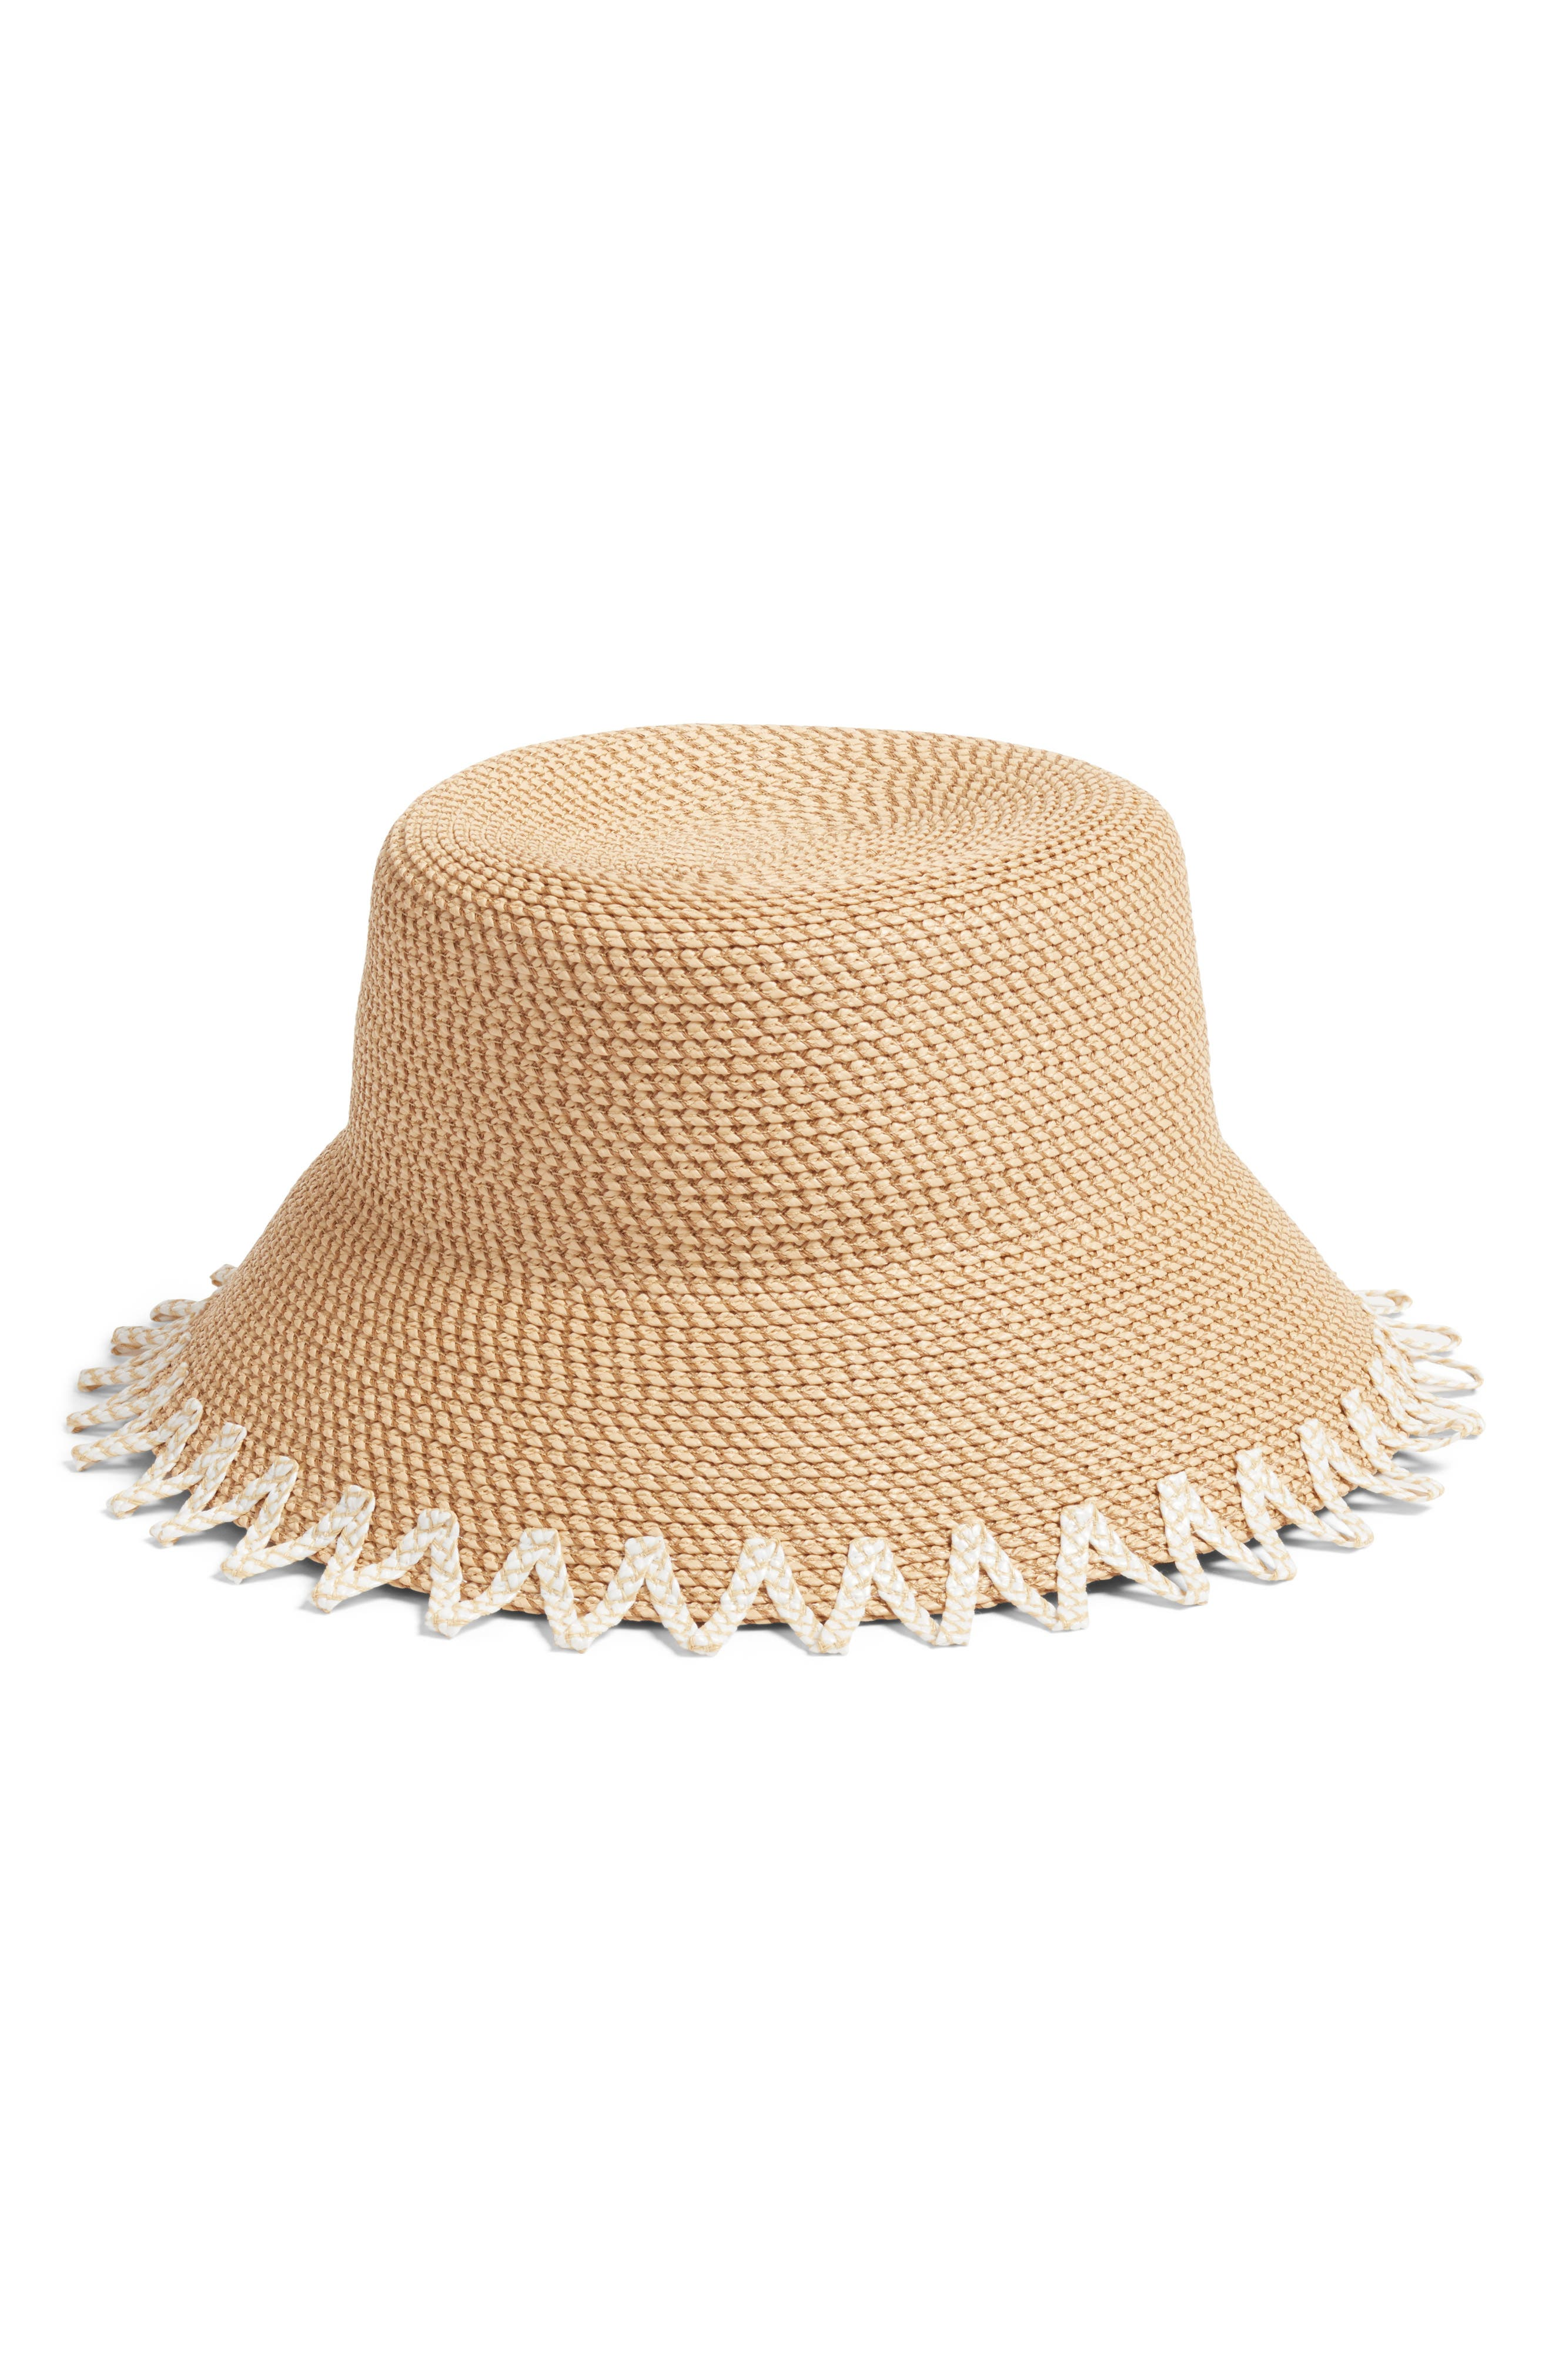 Eloise Squishee<sup>®</sup> Bucket Hat,                             Main thumbnail 1, color,                             PEANUT MIX